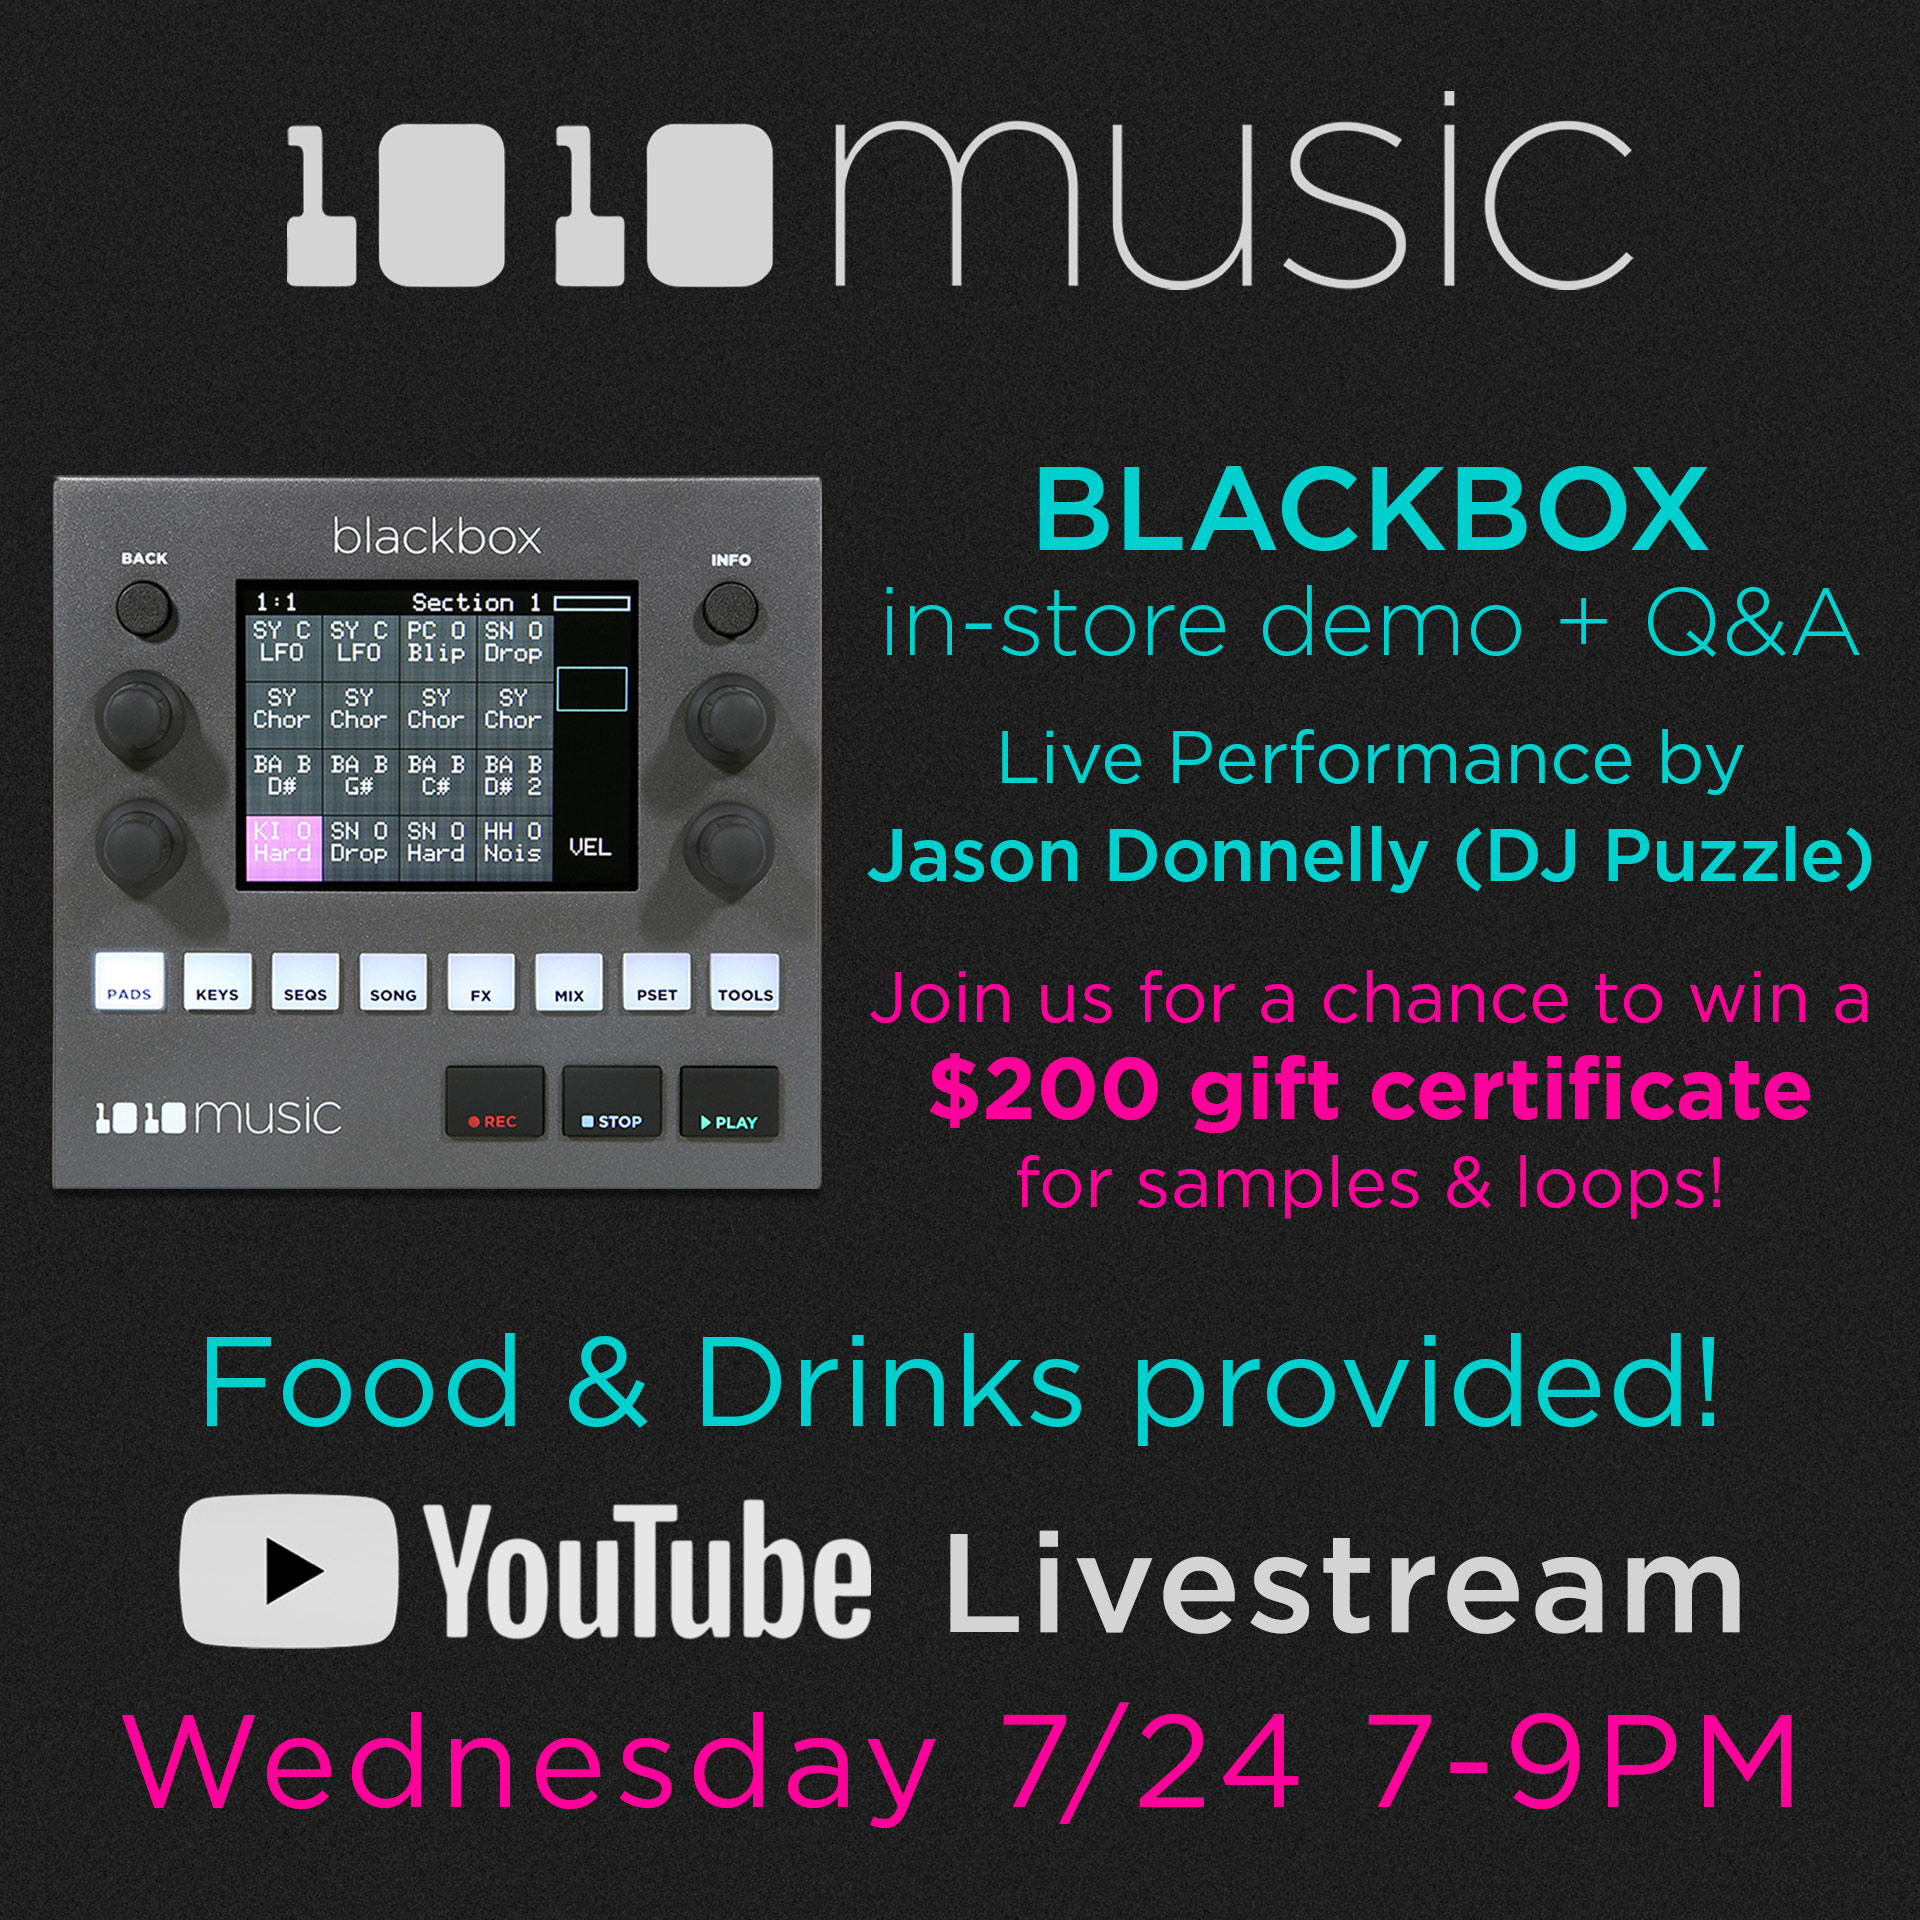 1010 Music Blackbox In-Store Demo + Q&A